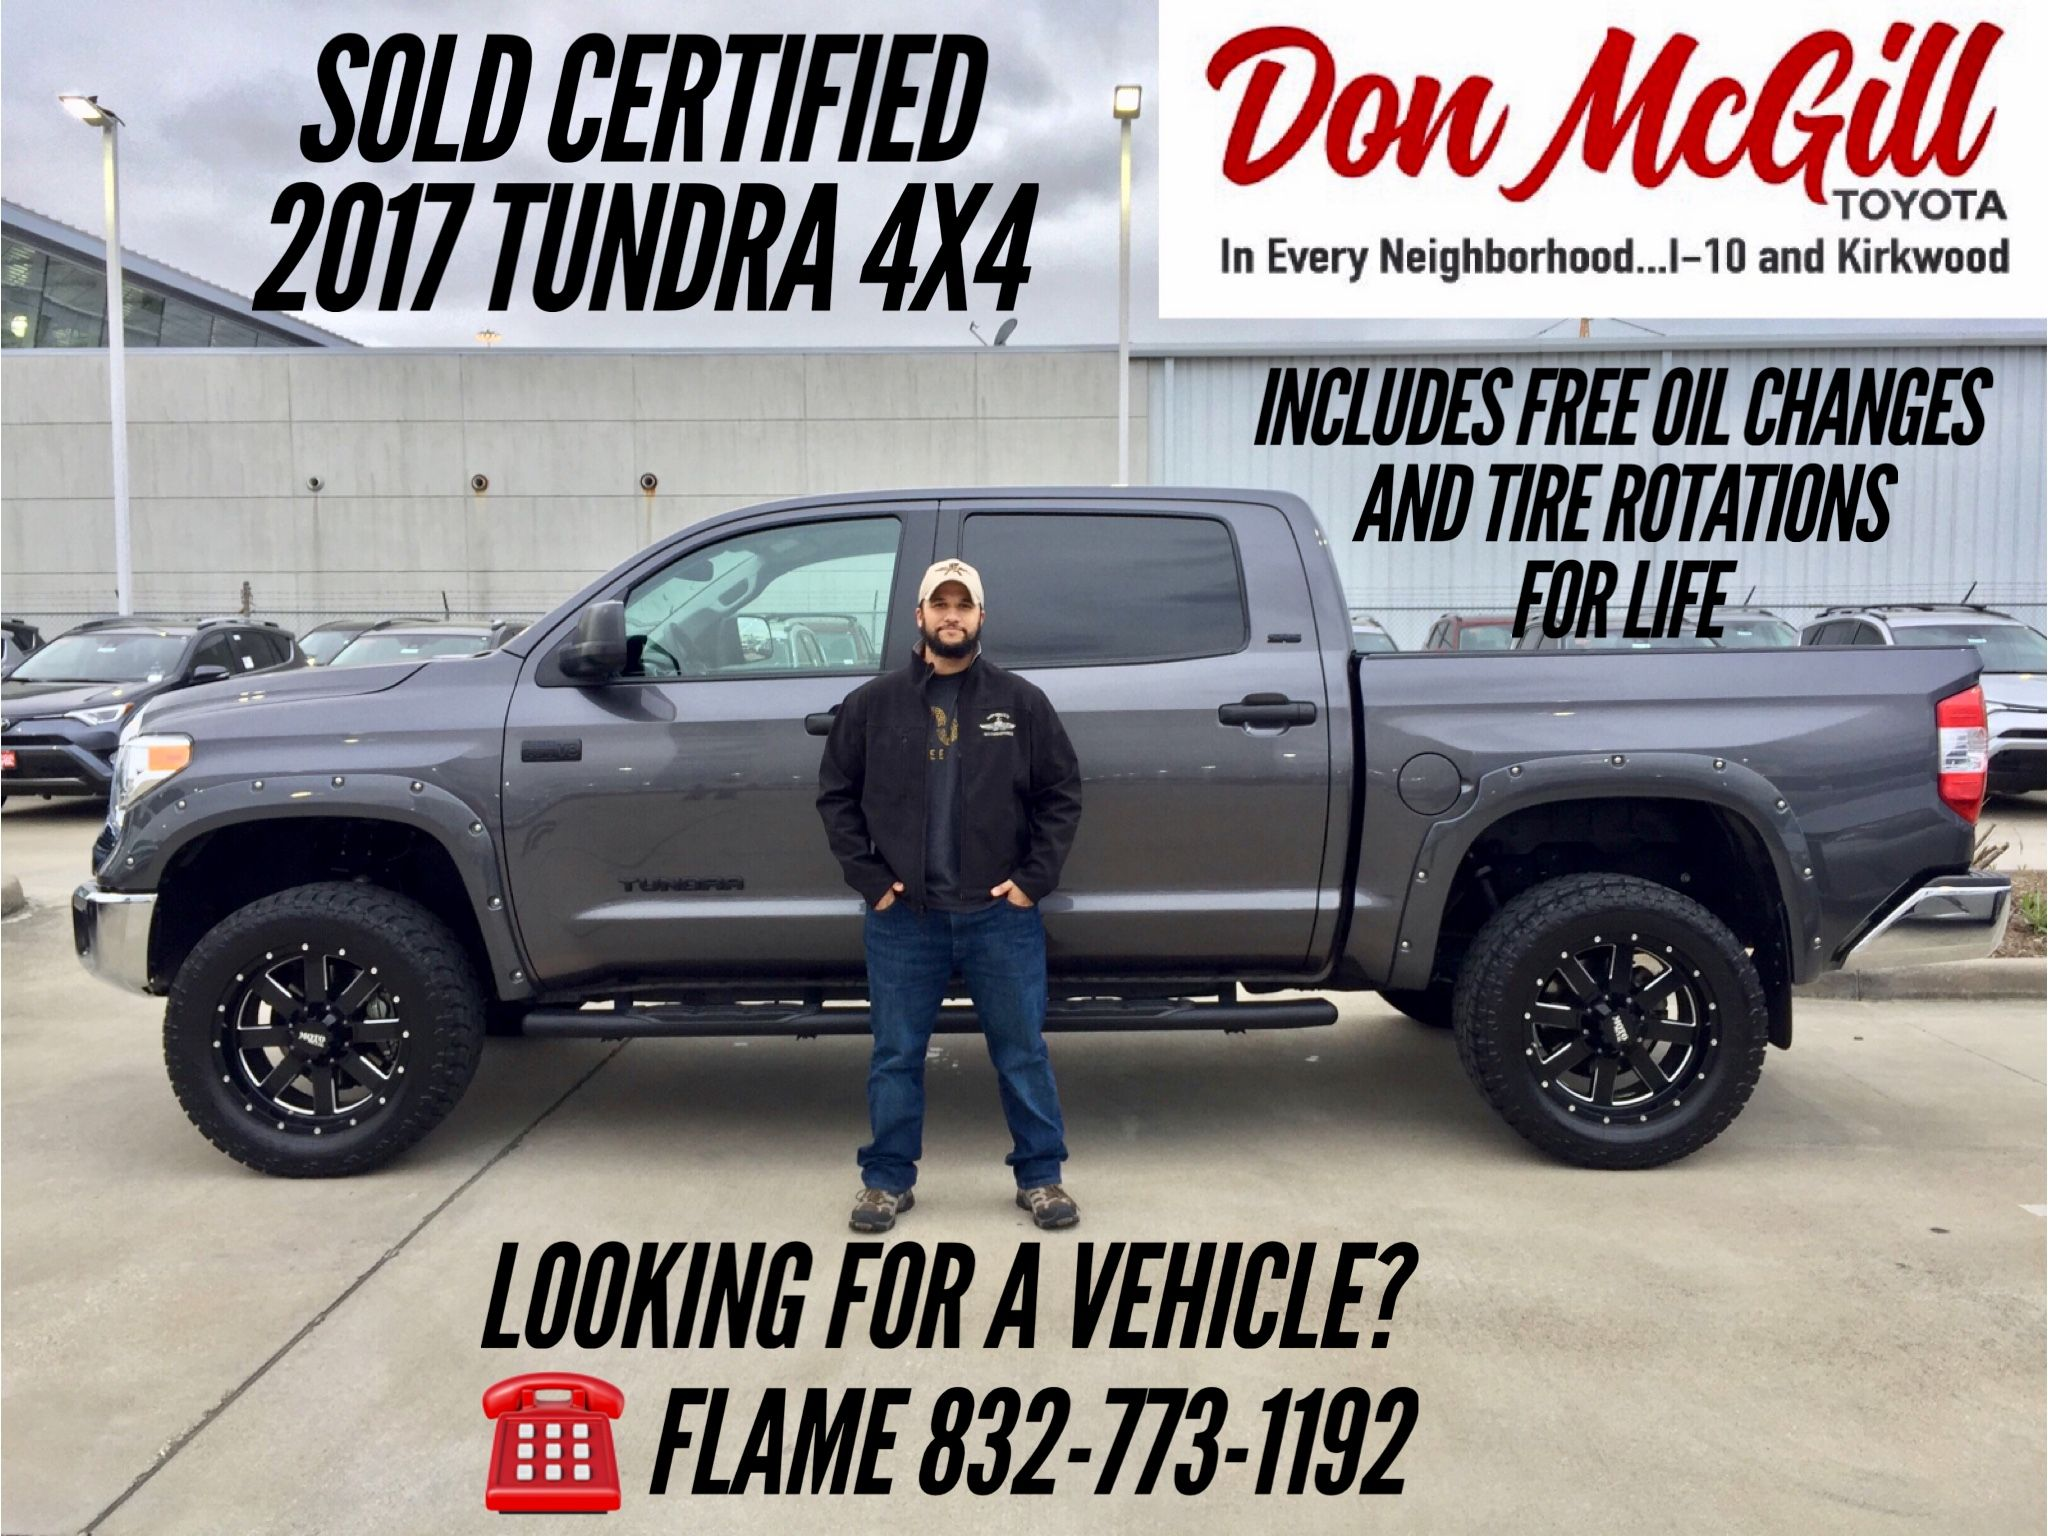 Don Mcgill Toyota 11800 Katy Freeway Houston Tx 77079 Call Or Text Flame 832 773 1192 For The Best Deal Donmcgilltoyota Toyota Vehicles The Neighbourhood